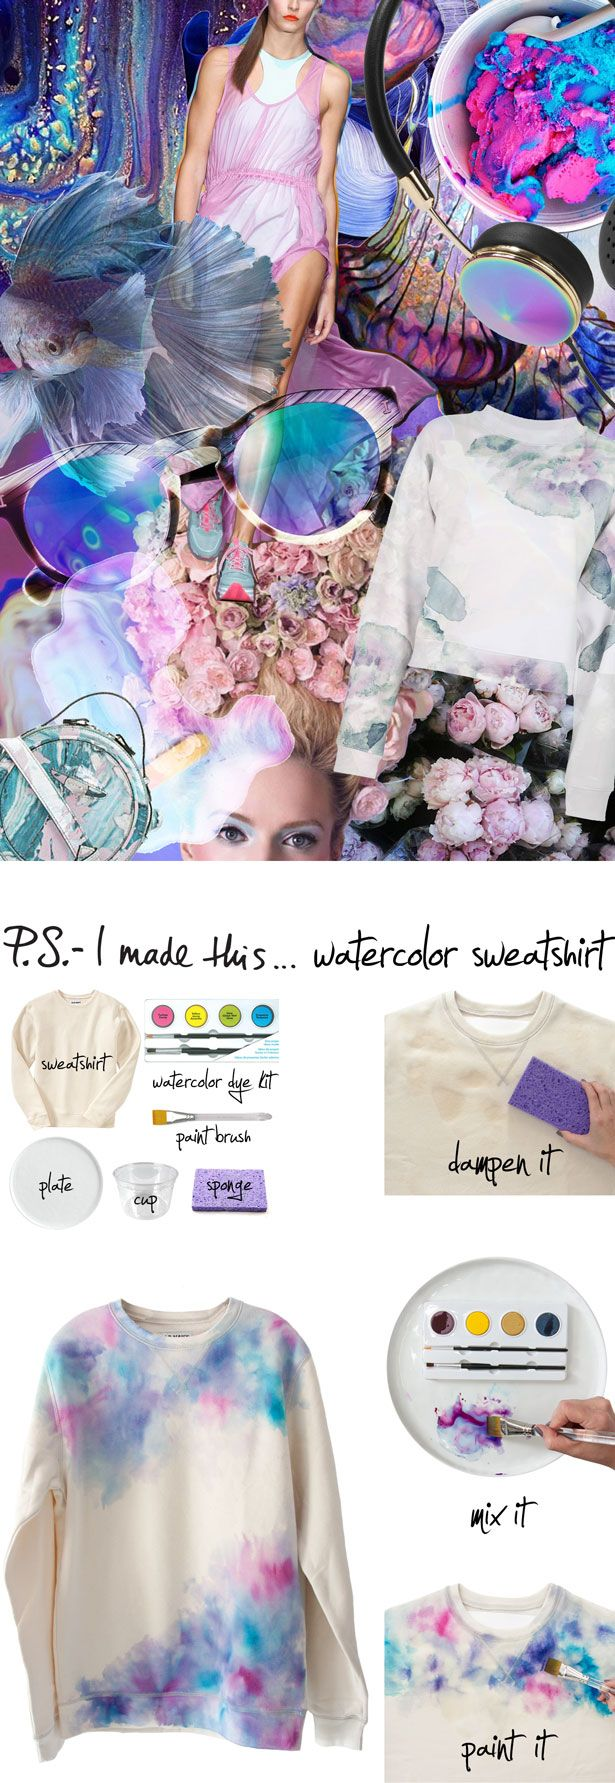 Make your own Watercolor Sweatshirt! How cool!